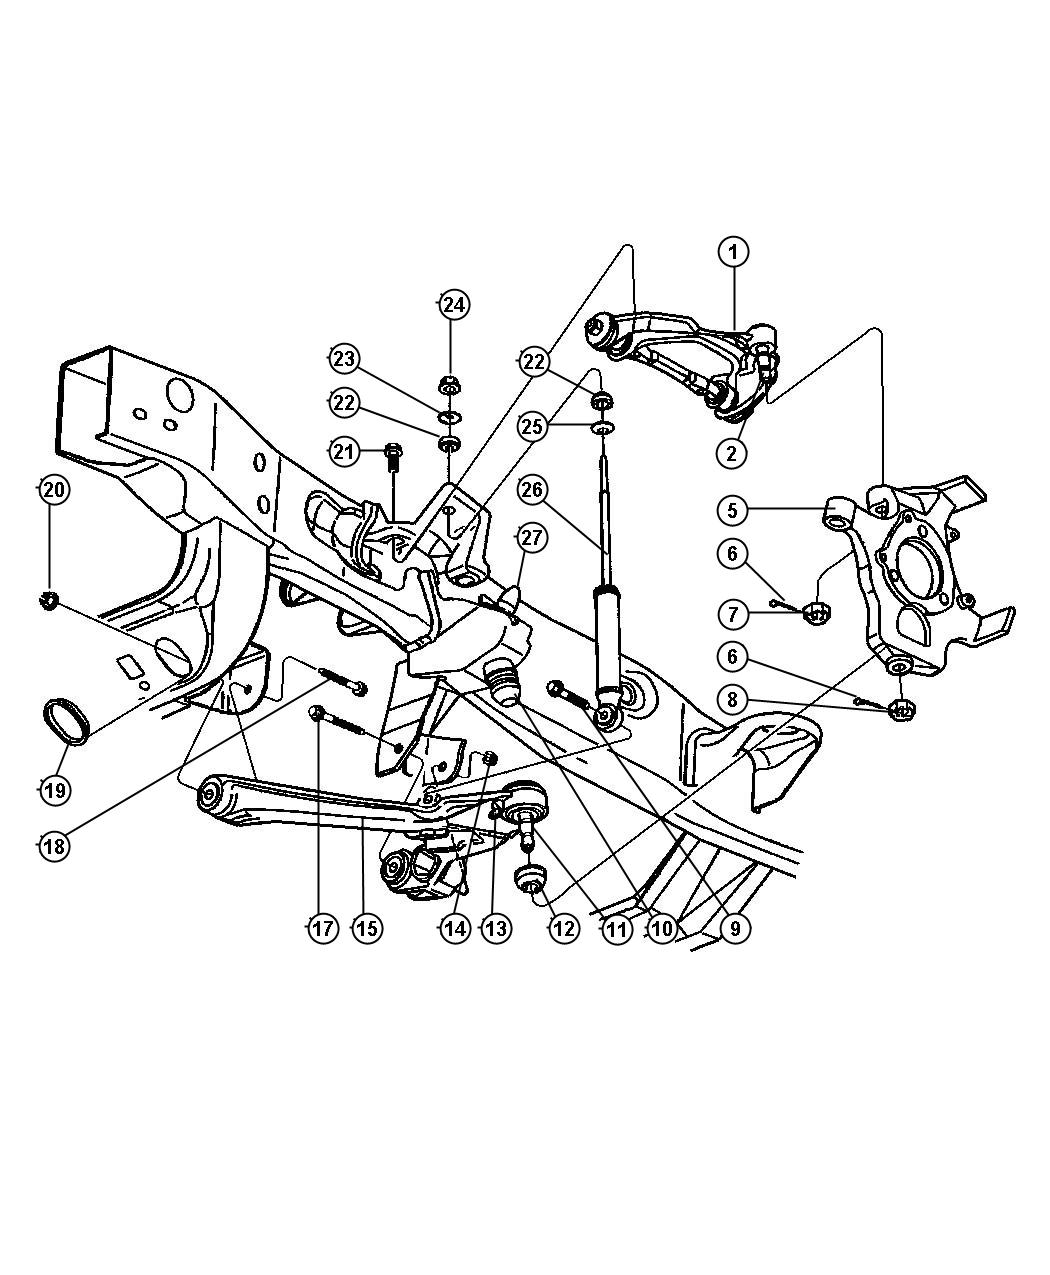 Chrysler 300 Bolt Used For Bolt And Washer Used